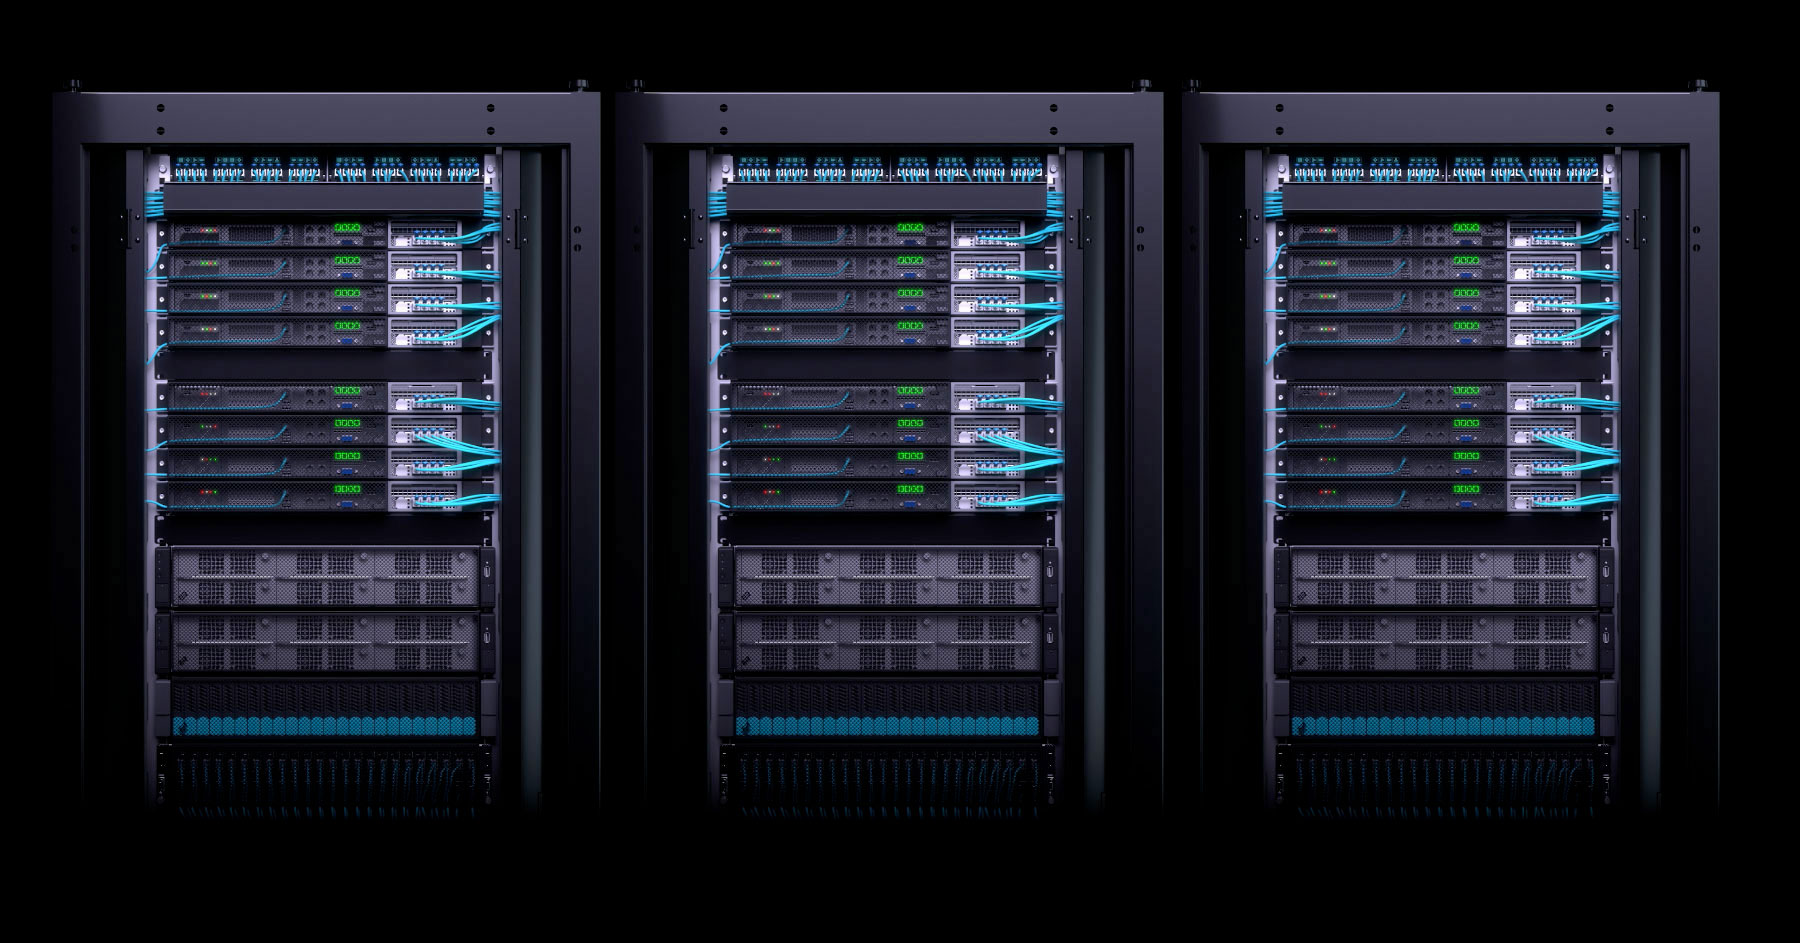 Liqid composable infrastructure racks